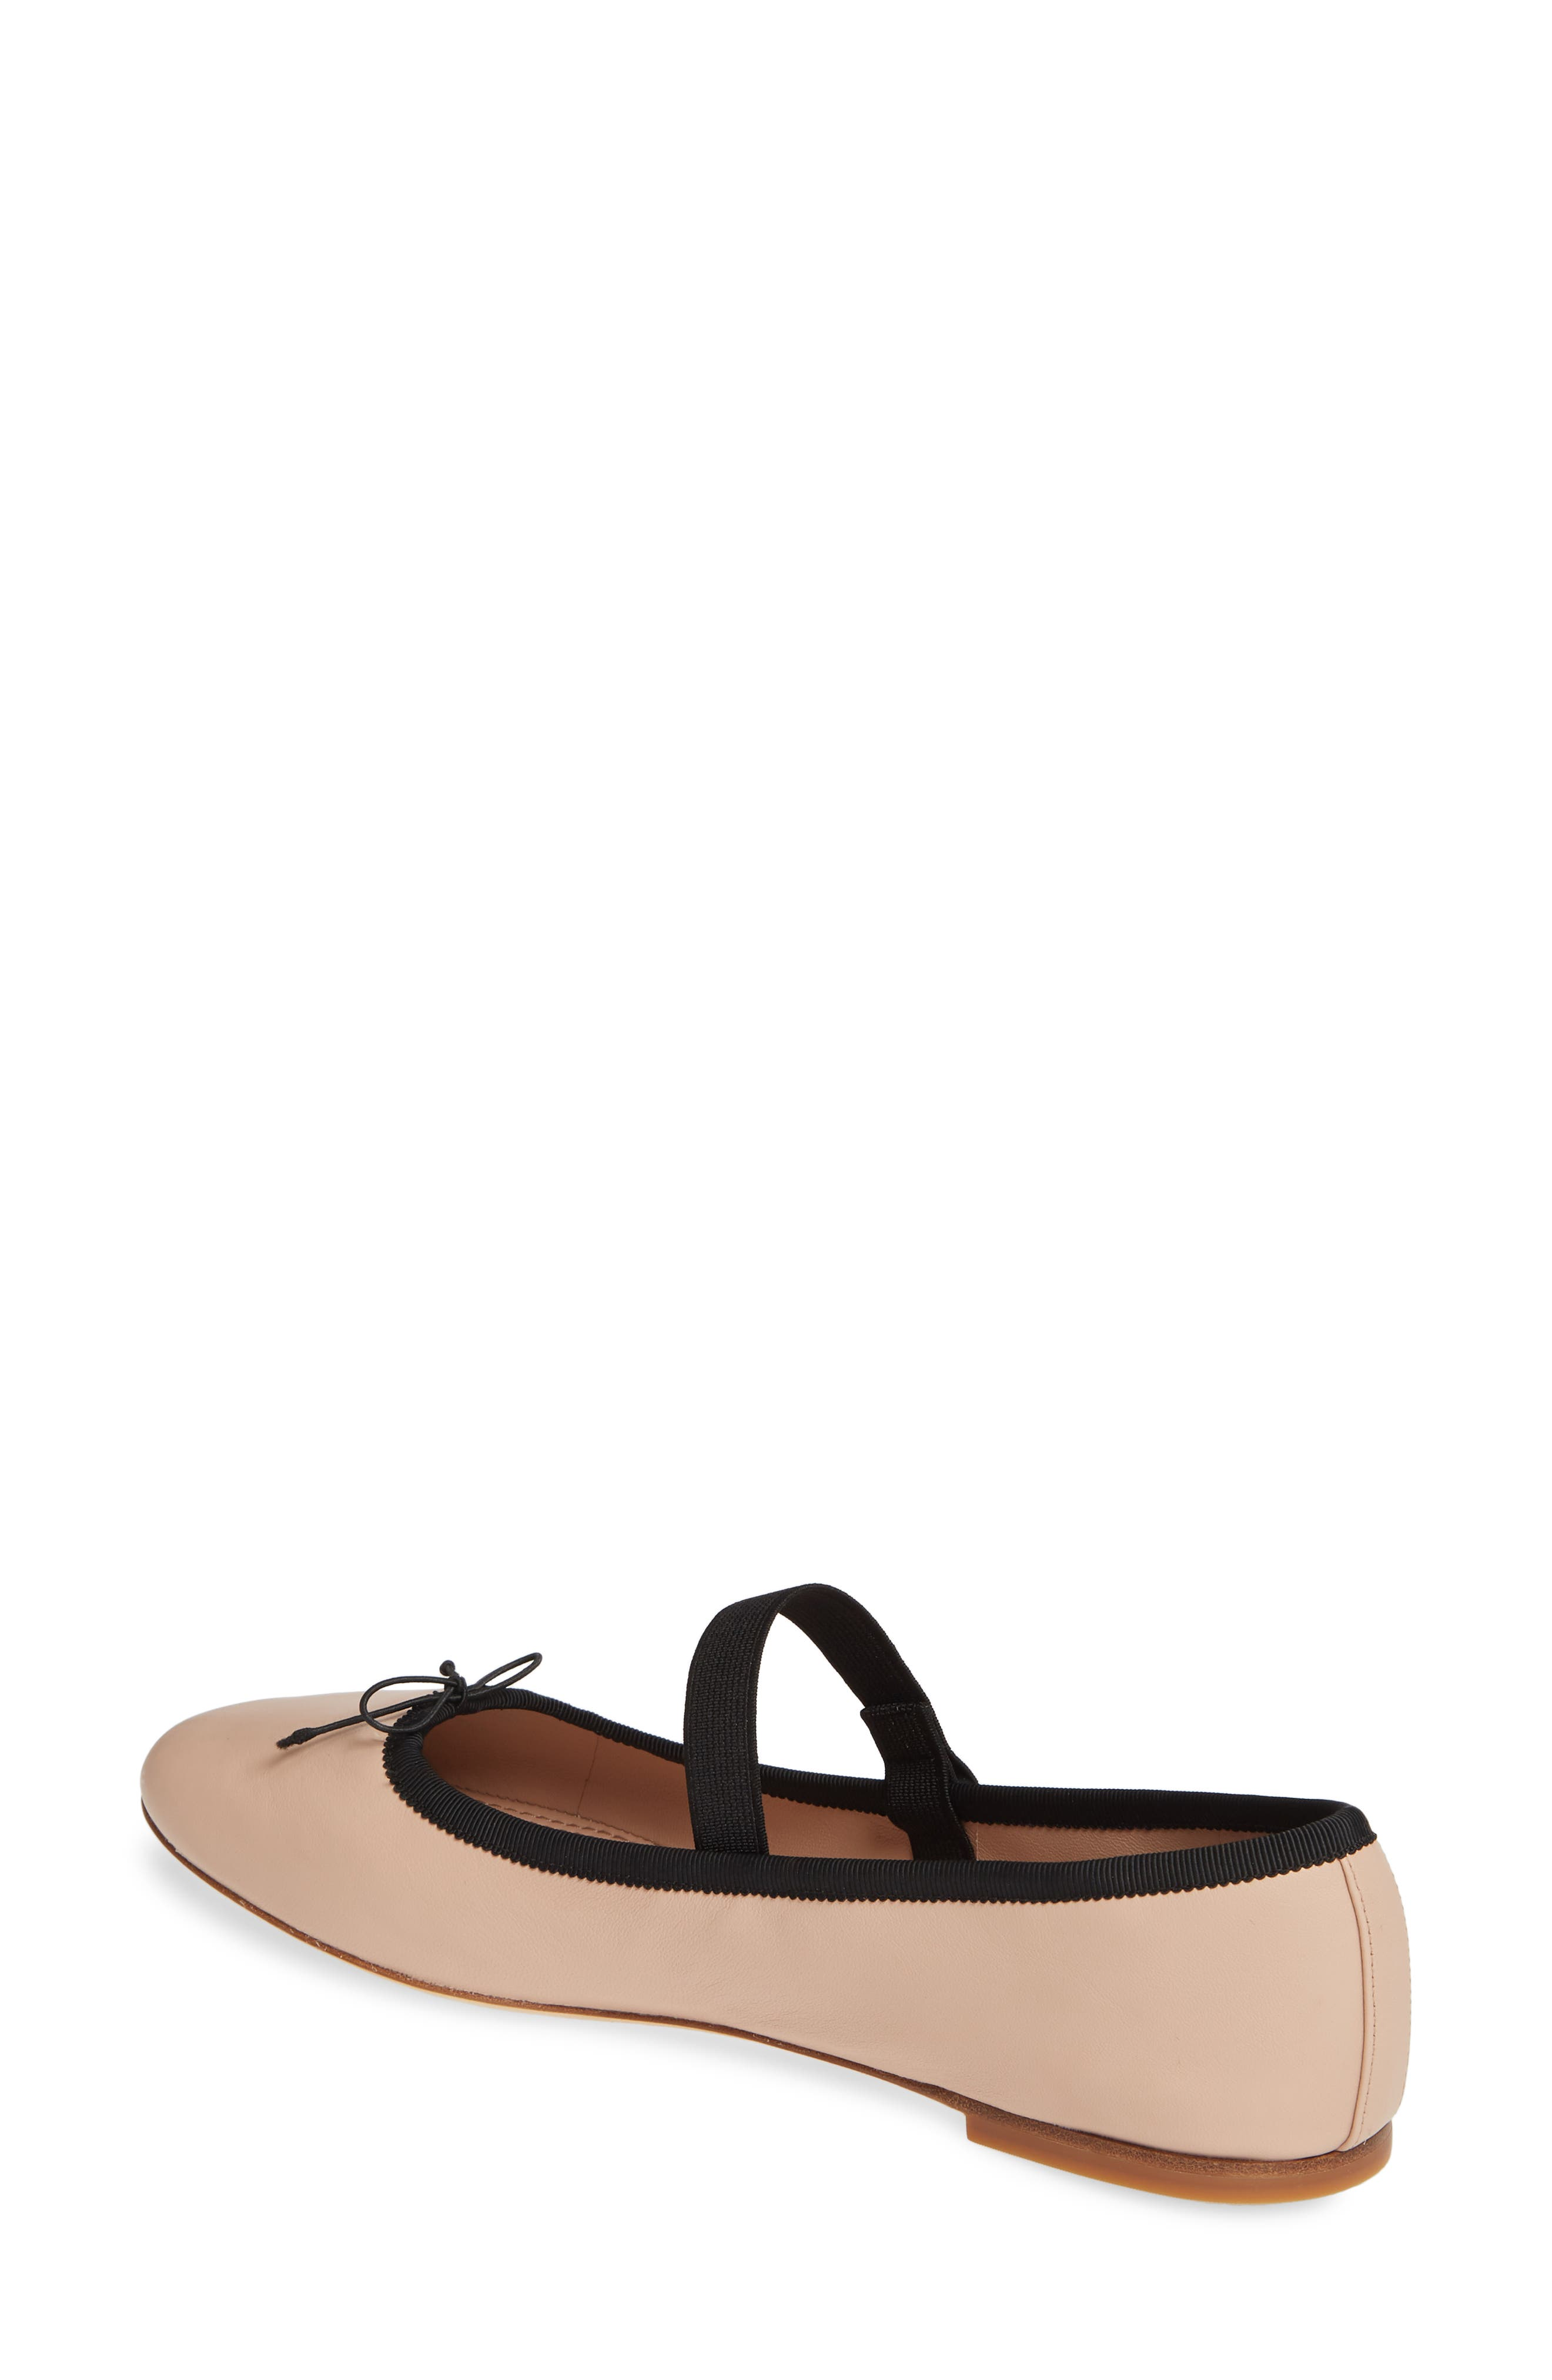 ,                             Mary Jane Ballet Flat,                             Alternate thumbnail 2, color,                             GOAN SAND/ PERFECT BLACK